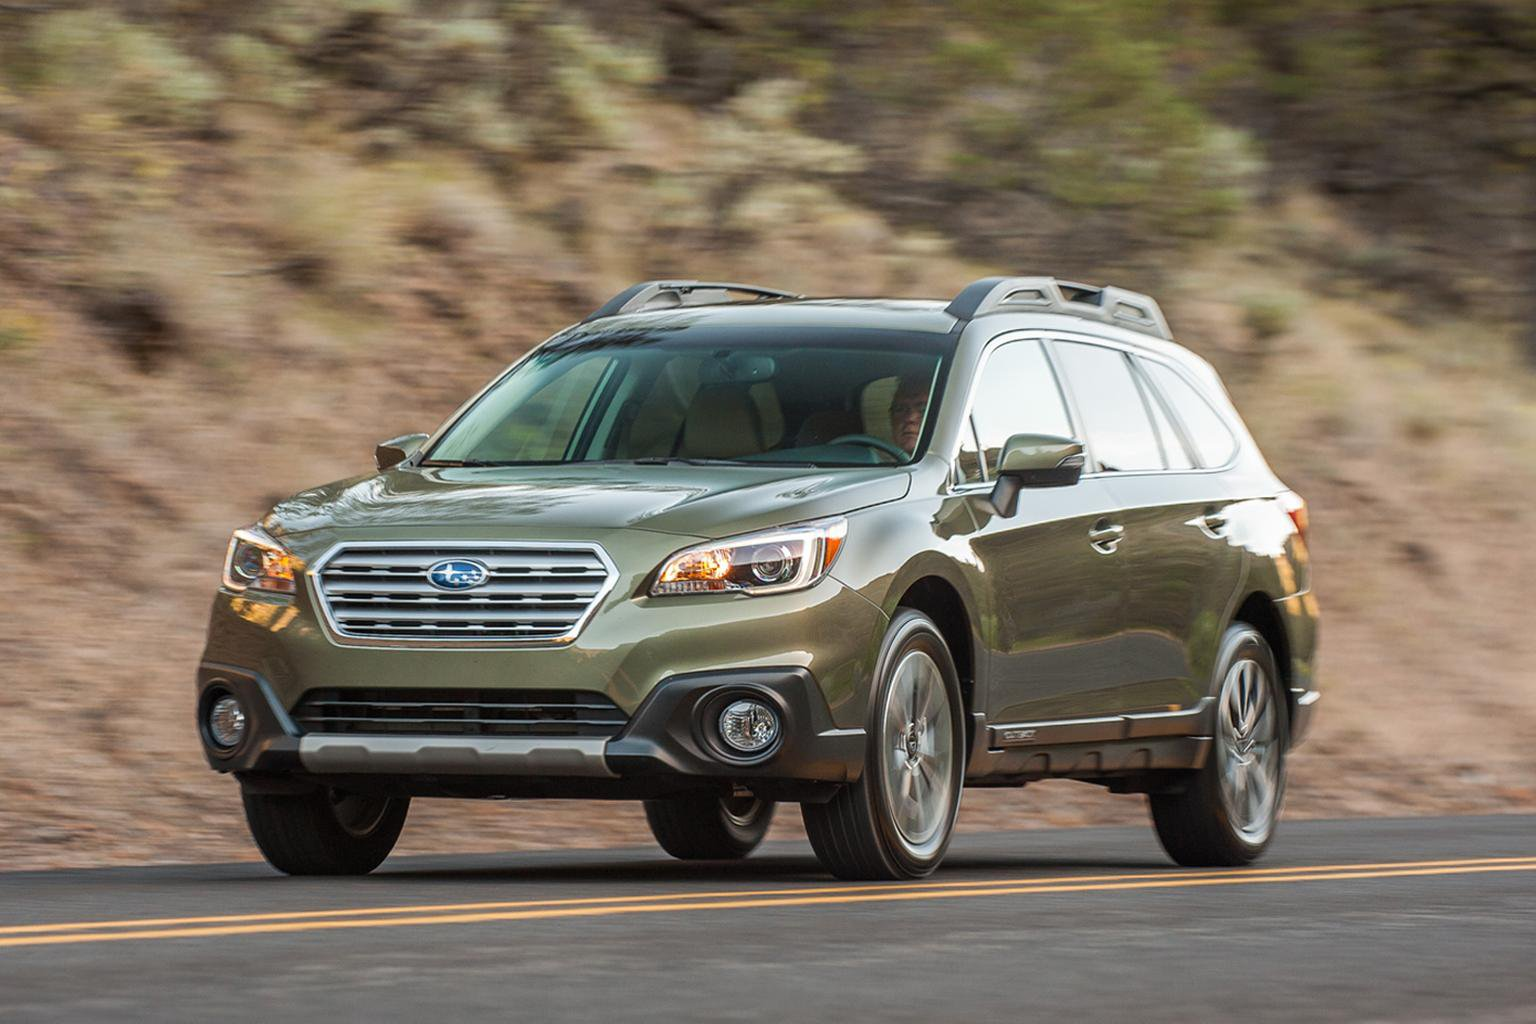 Join us for an exclusive look at the 2015 Subaru Outback